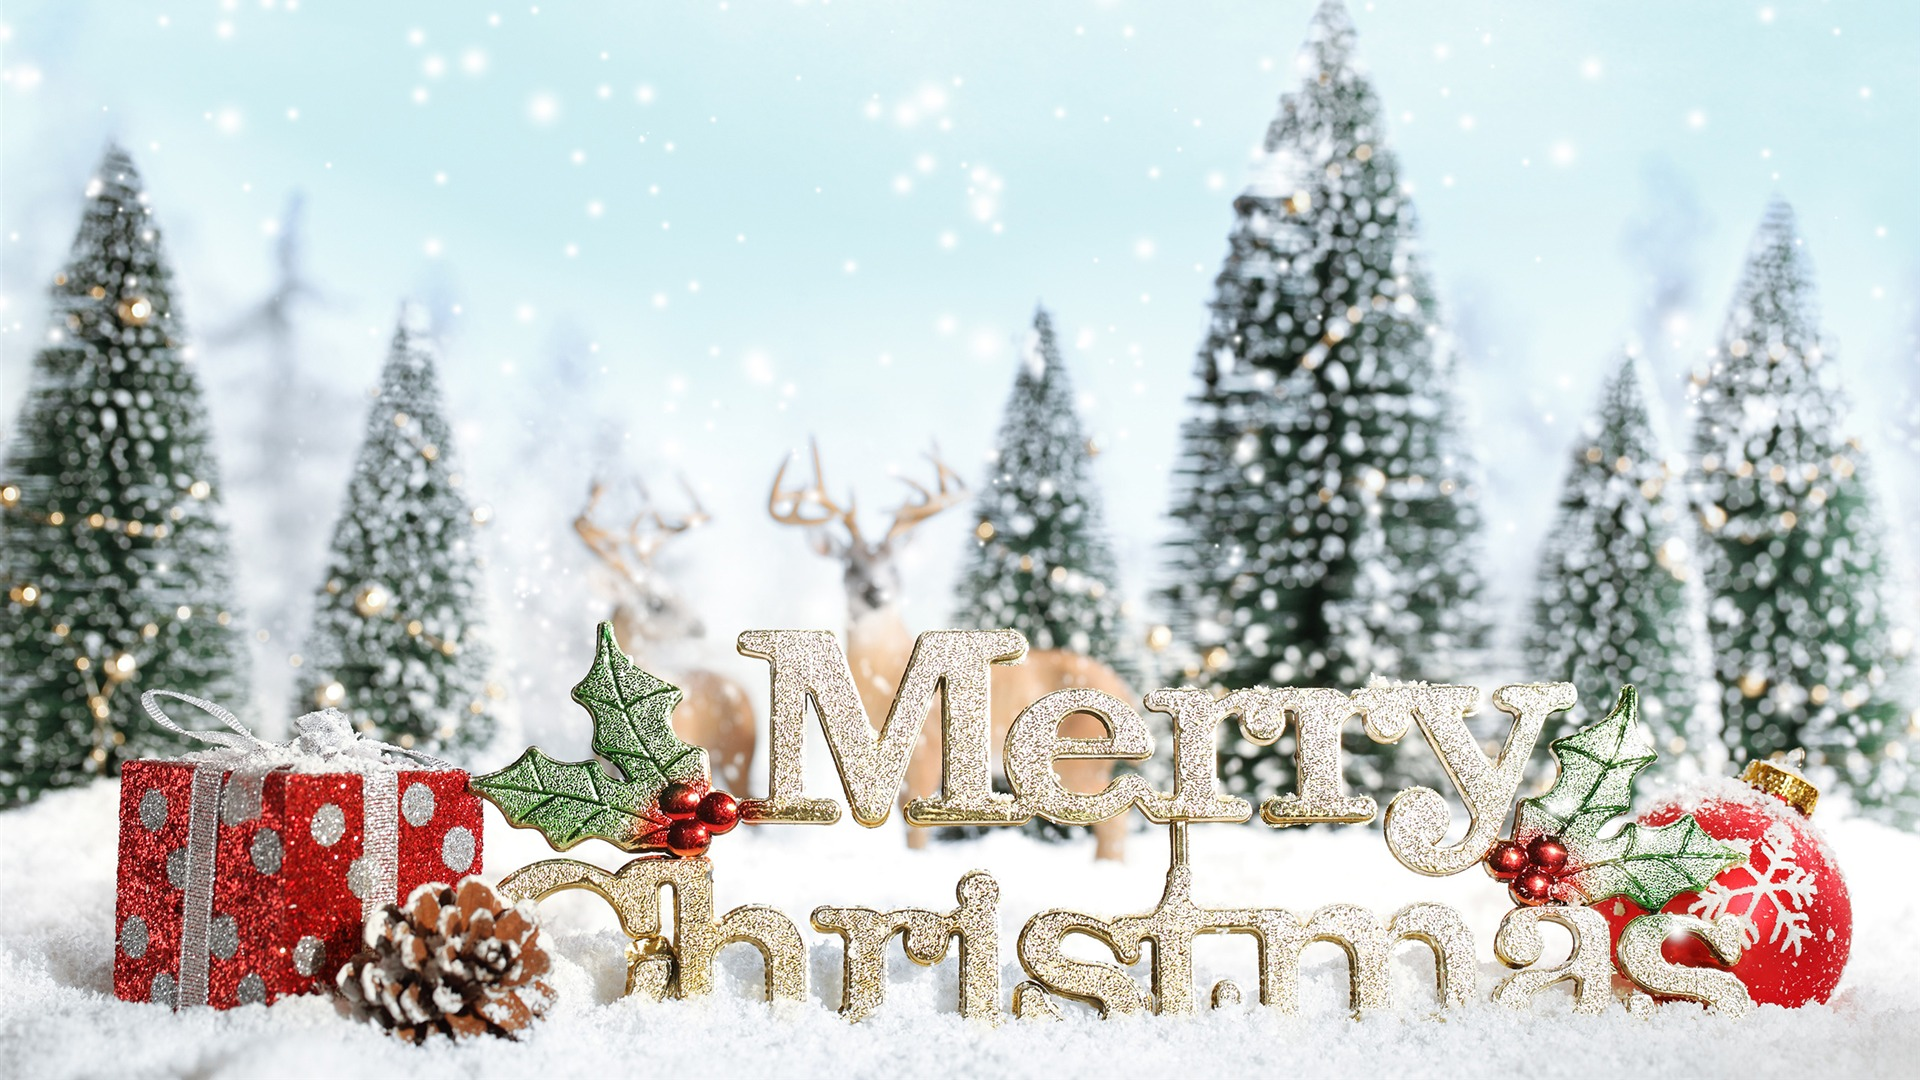 Merry Christmas Hd Wallpaper P